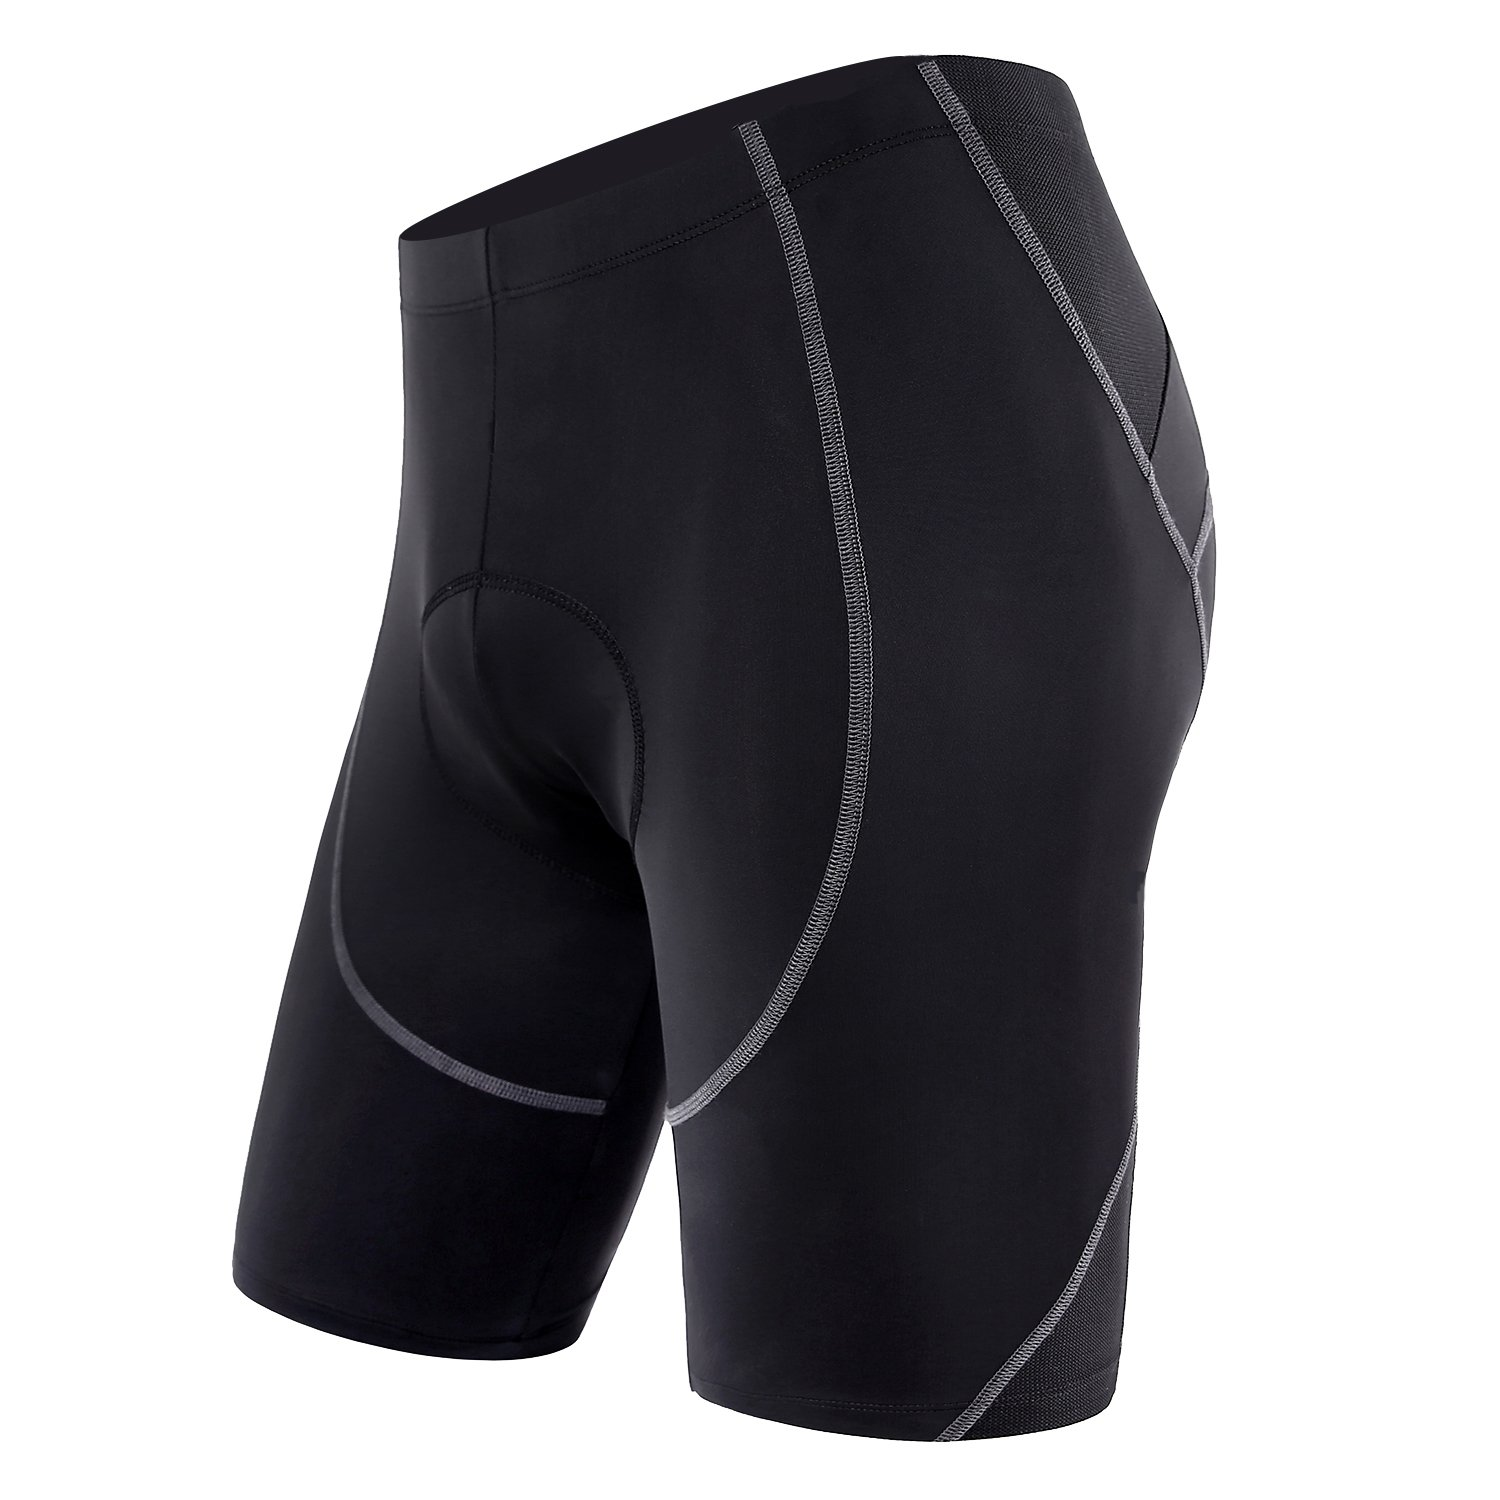 Sportneer Men's Cycling Shorts Biking Bike Bicycle Pants Half Pants 4D Coolmax Padded, Comfort, Anti-Slip Design, Breathable & Absorbent